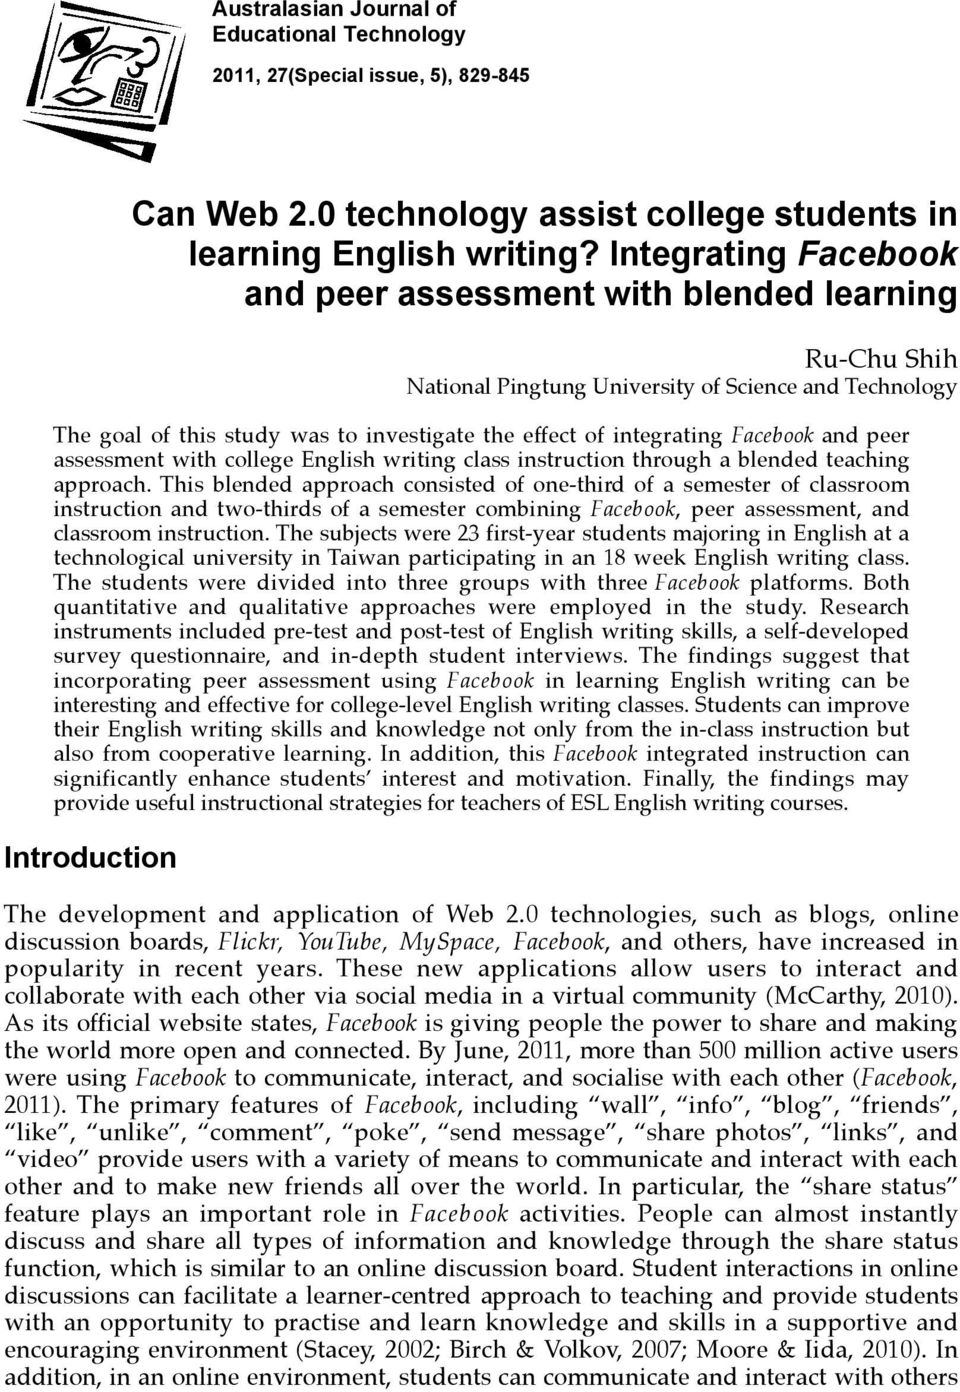 Facebook and peer assessment with college English writing class instruction through a blended teaching approach.